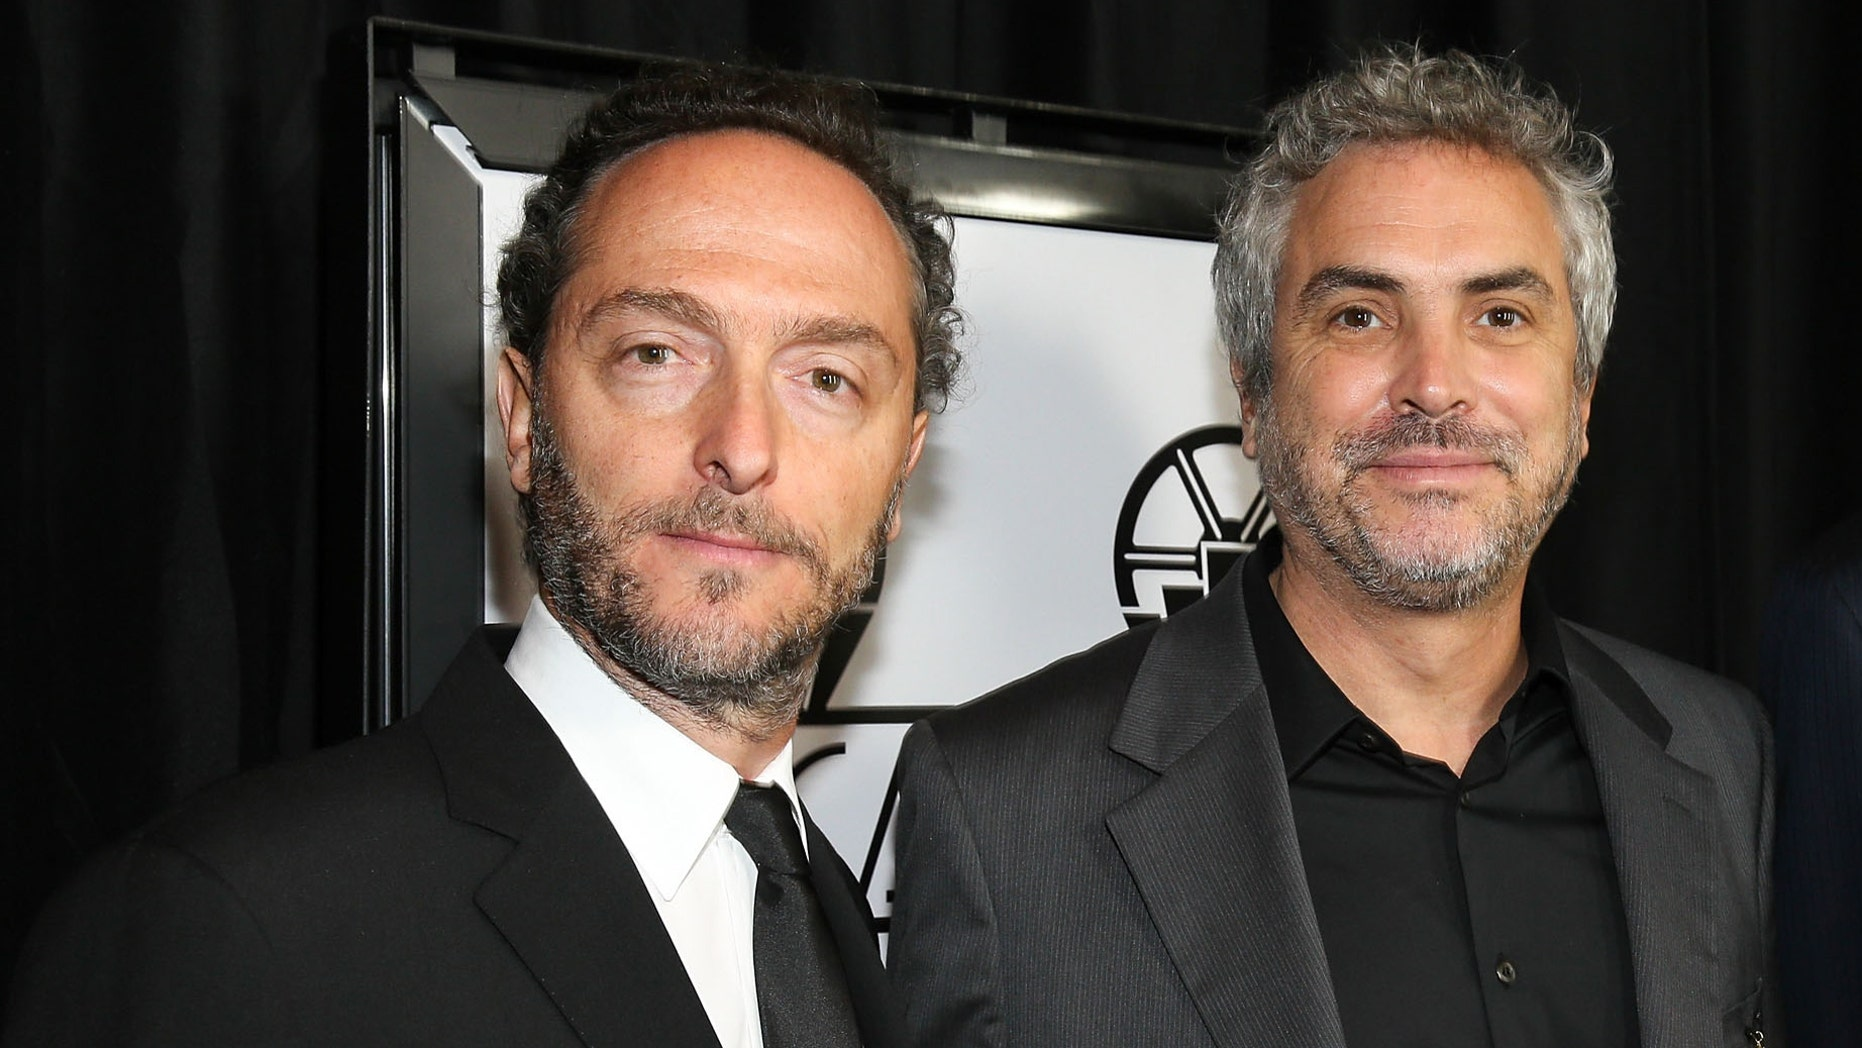 CENTURY CITY, CA - JANUARY 11:  (L-R) Cinematographer Emmanuel Lubezki, and director Alfonso Cuaron, attend the 39th Annual Los Angeles Film Critics Association Awards at InterContinental Hotel on January 11, 2014 in Century City, California.  (Photo by Imeh Akpanudosen/Getty Images)